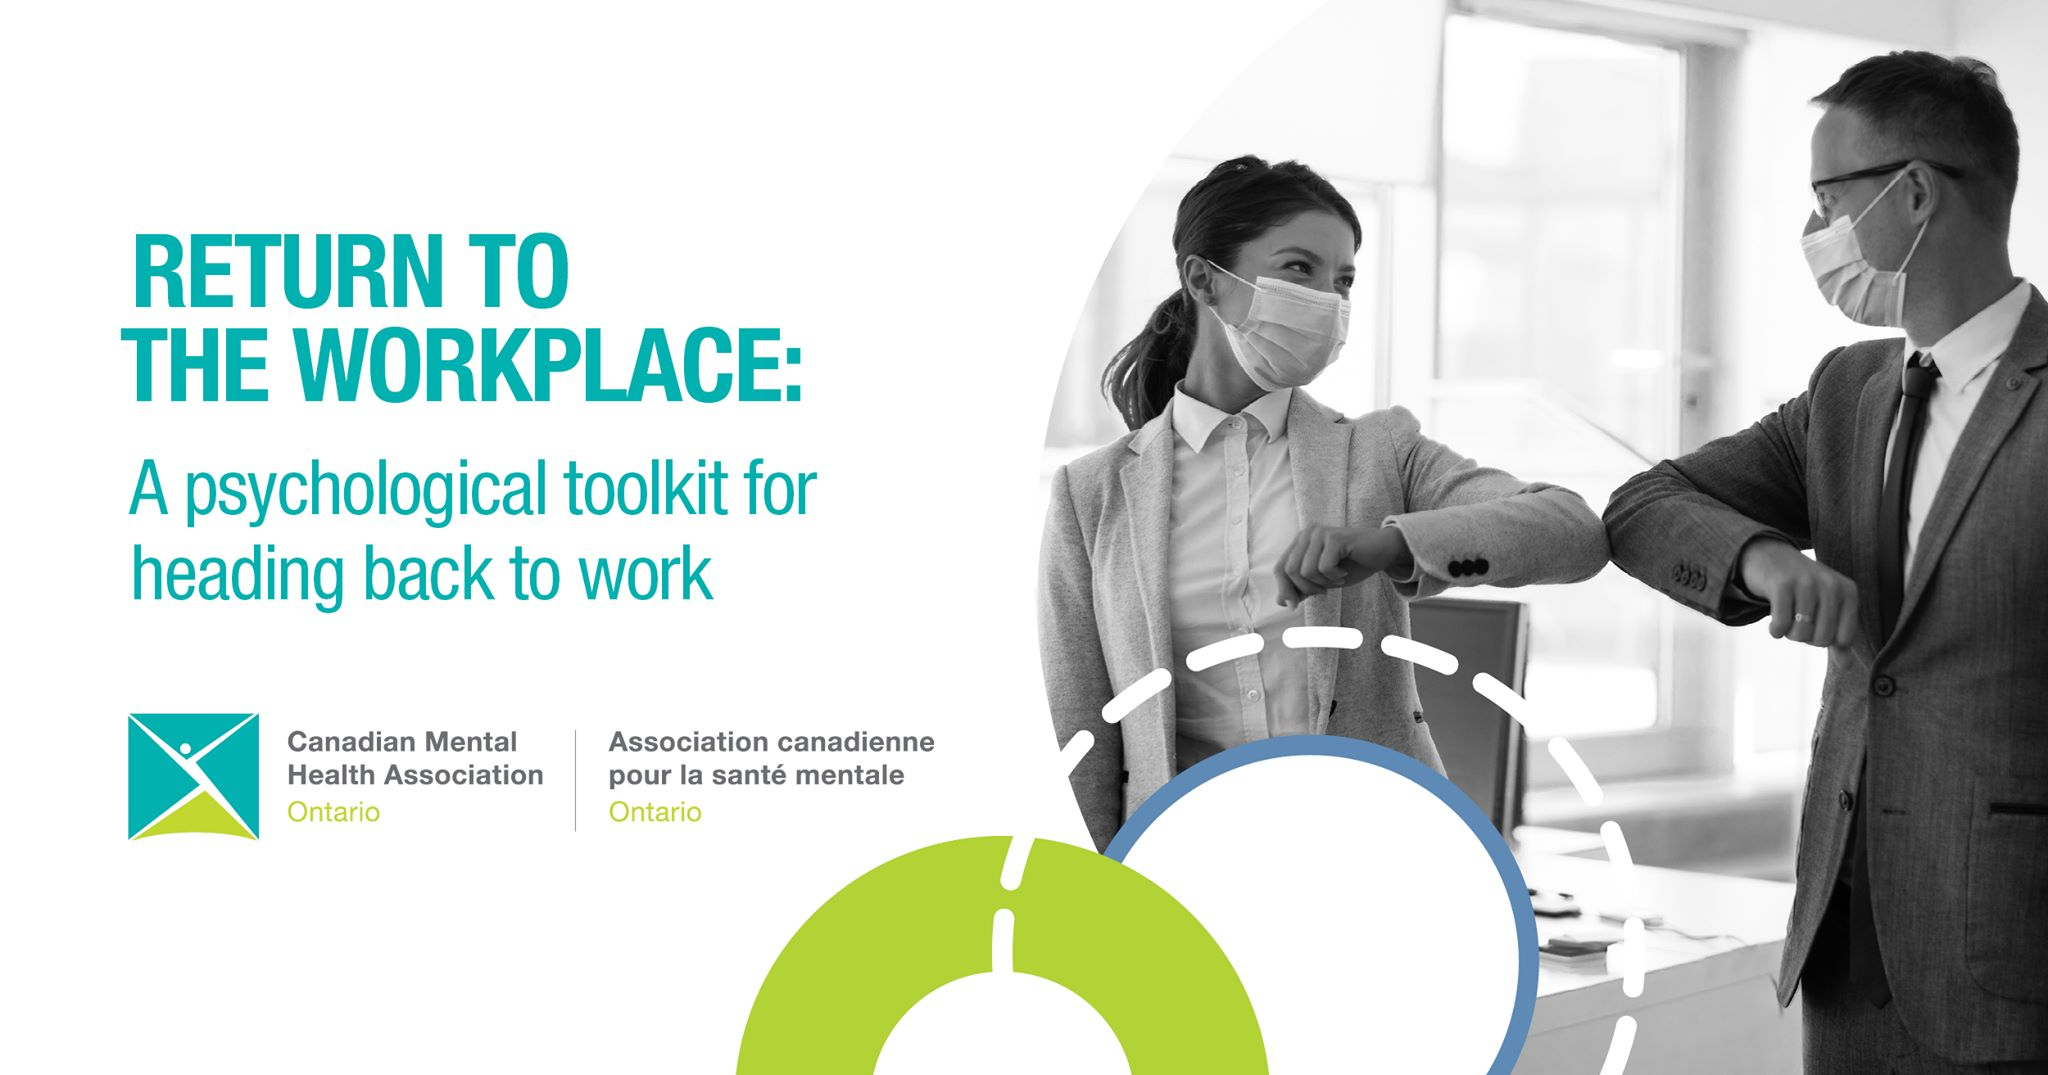 Guide for Employers and Employees for Returning to Work